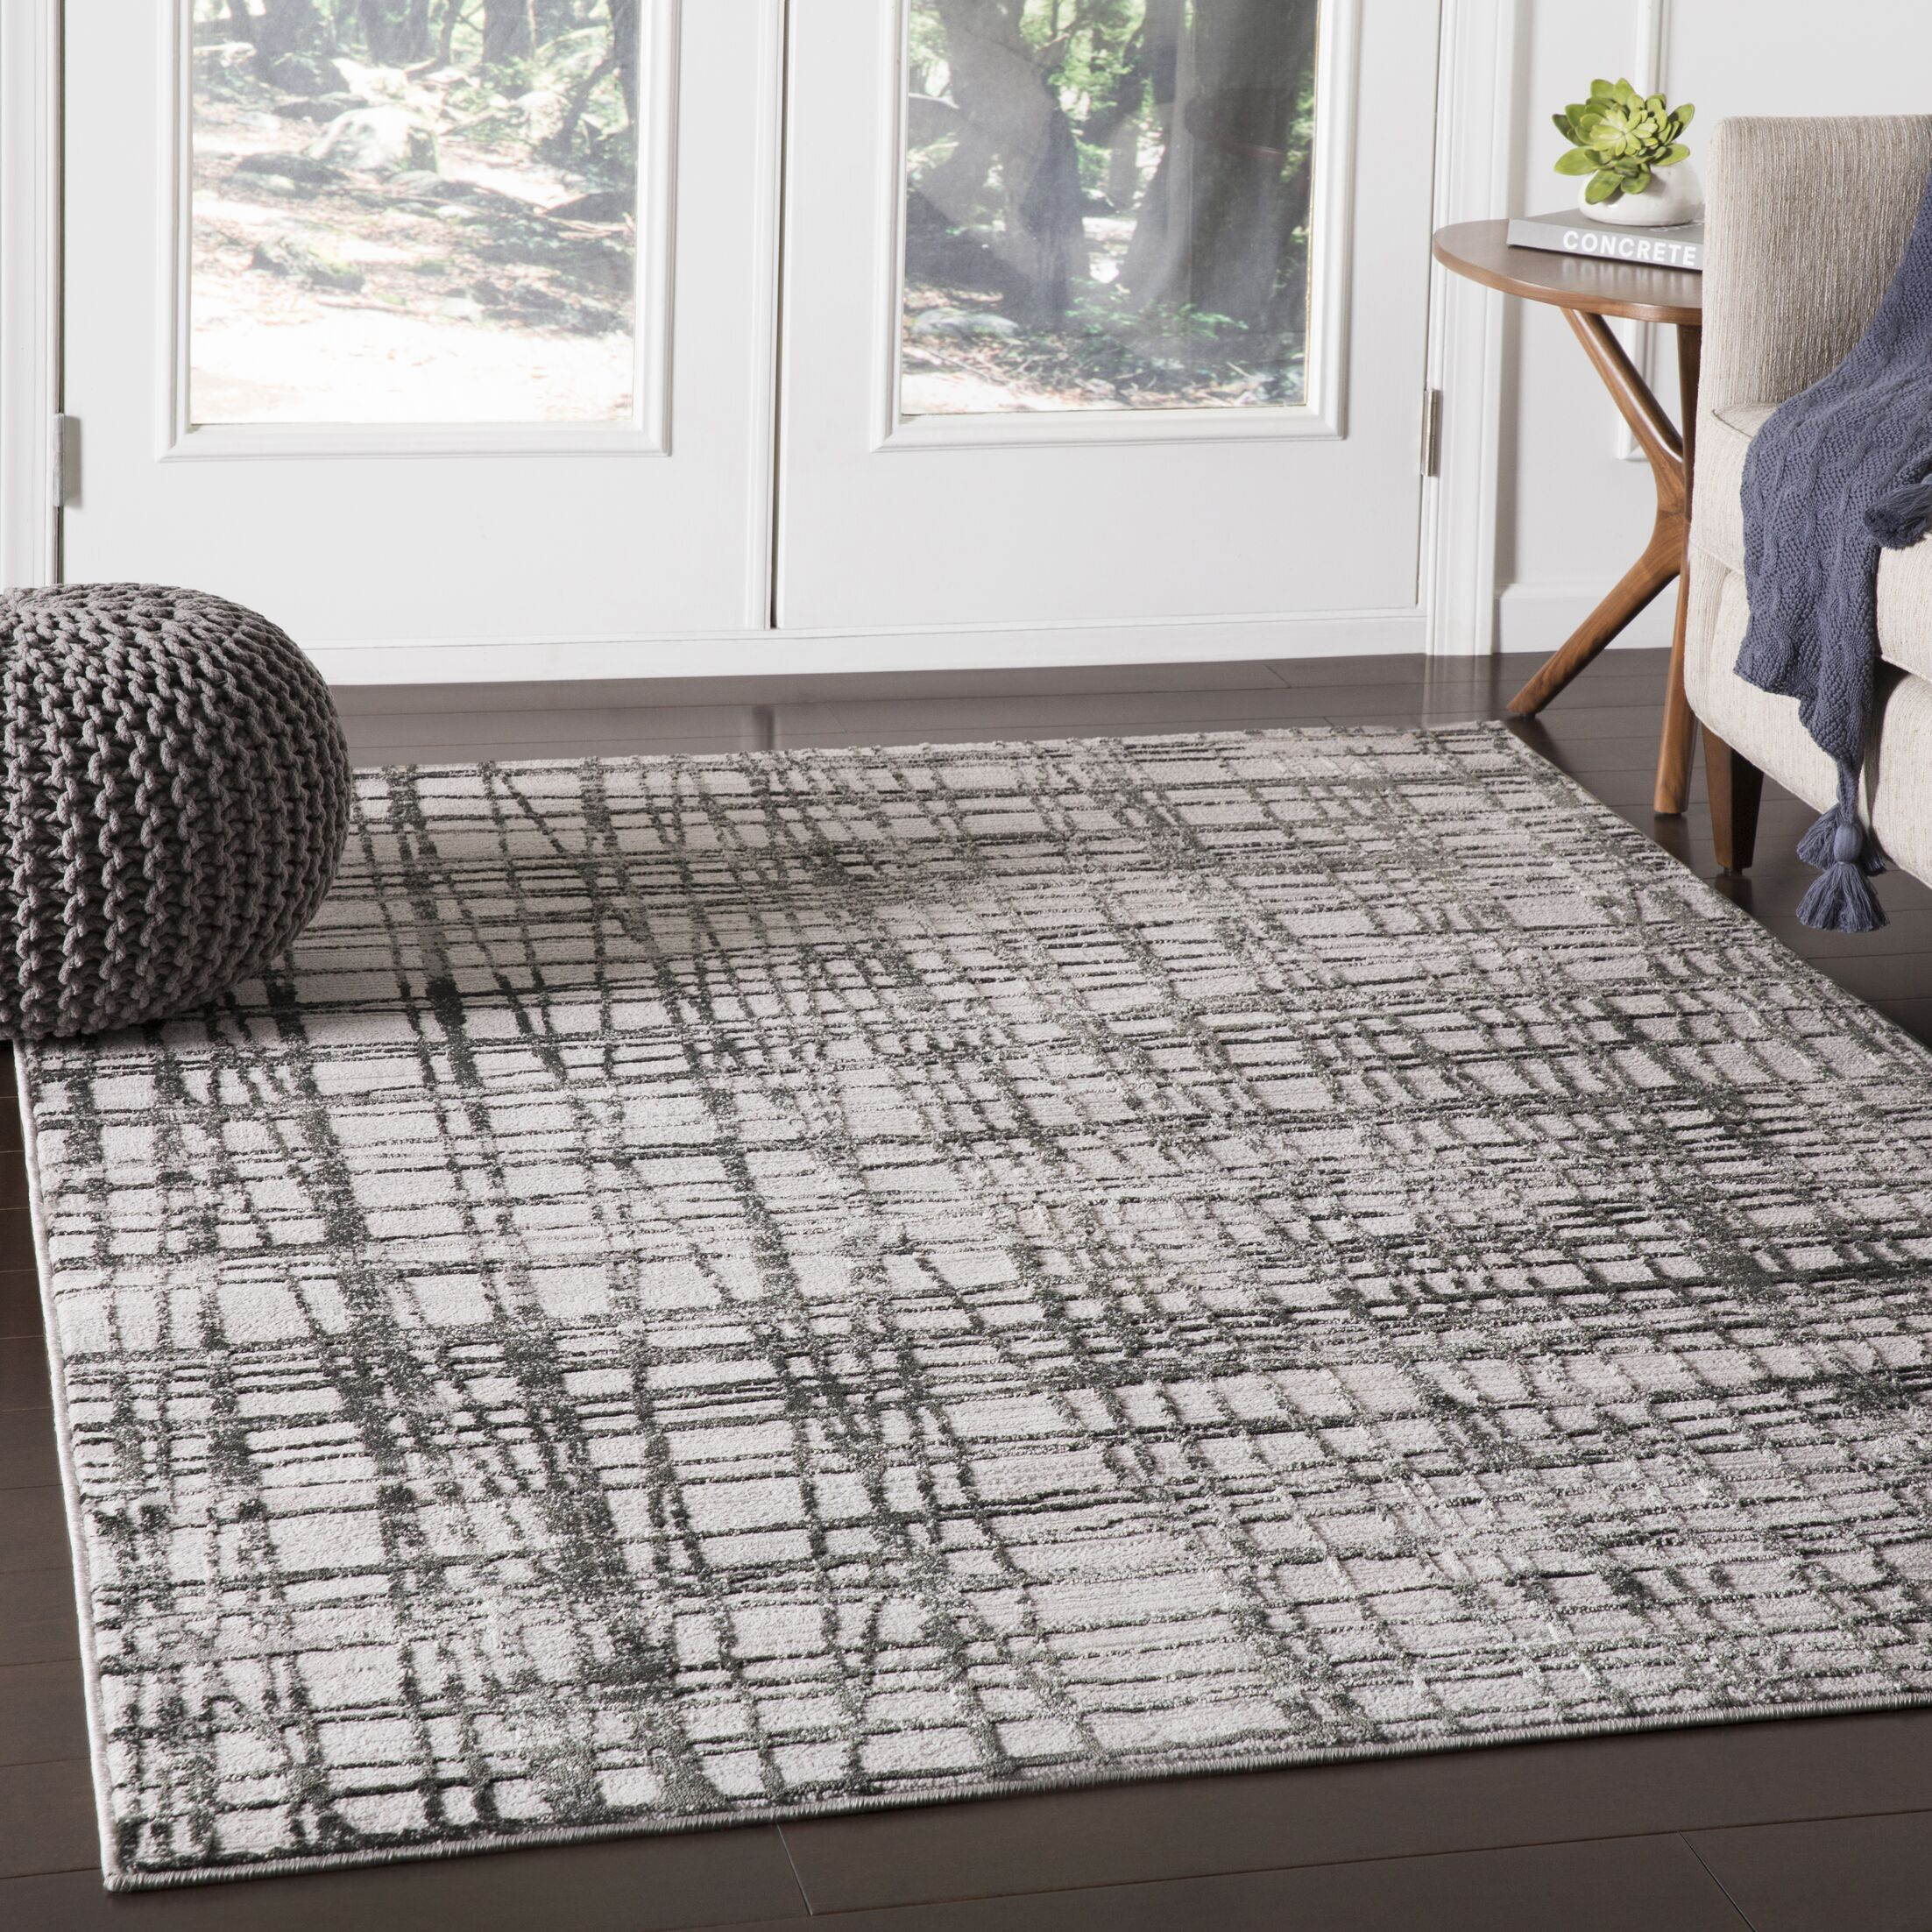 Ginder Abstract Black Area Rug Rug Size: Rectangle 7'10